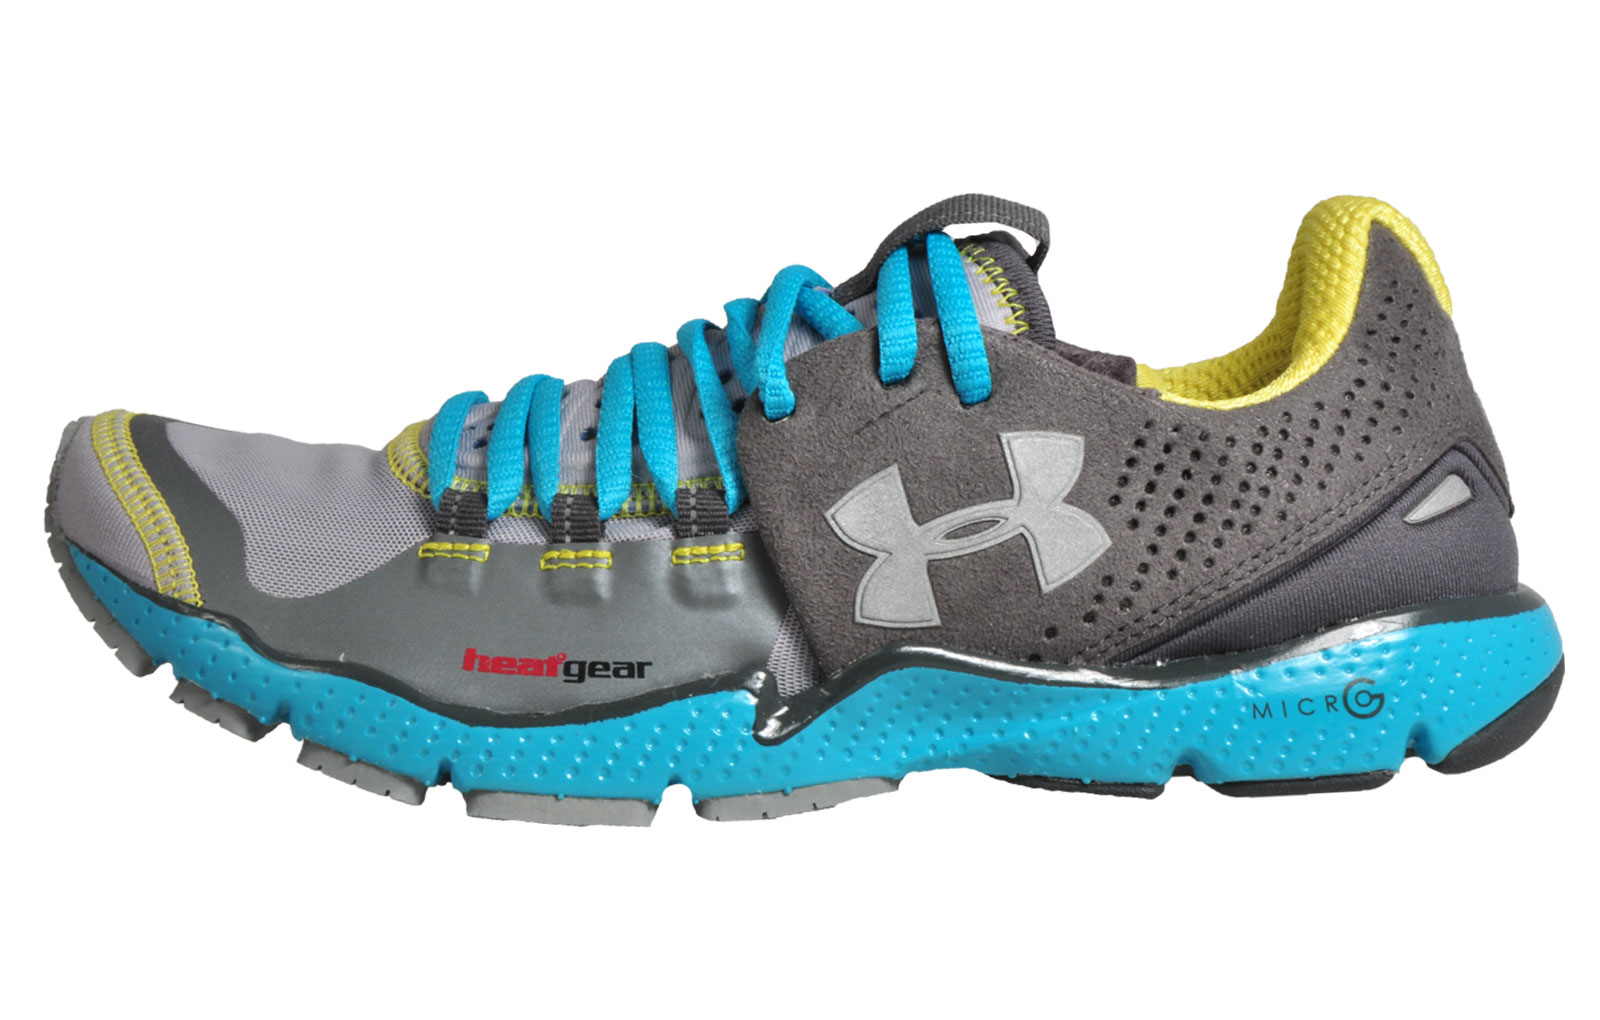 new product 6f181 7af6c Under Armour Charge RC Womens Premium Running Shoes Fitness Gym Trainers  Grey